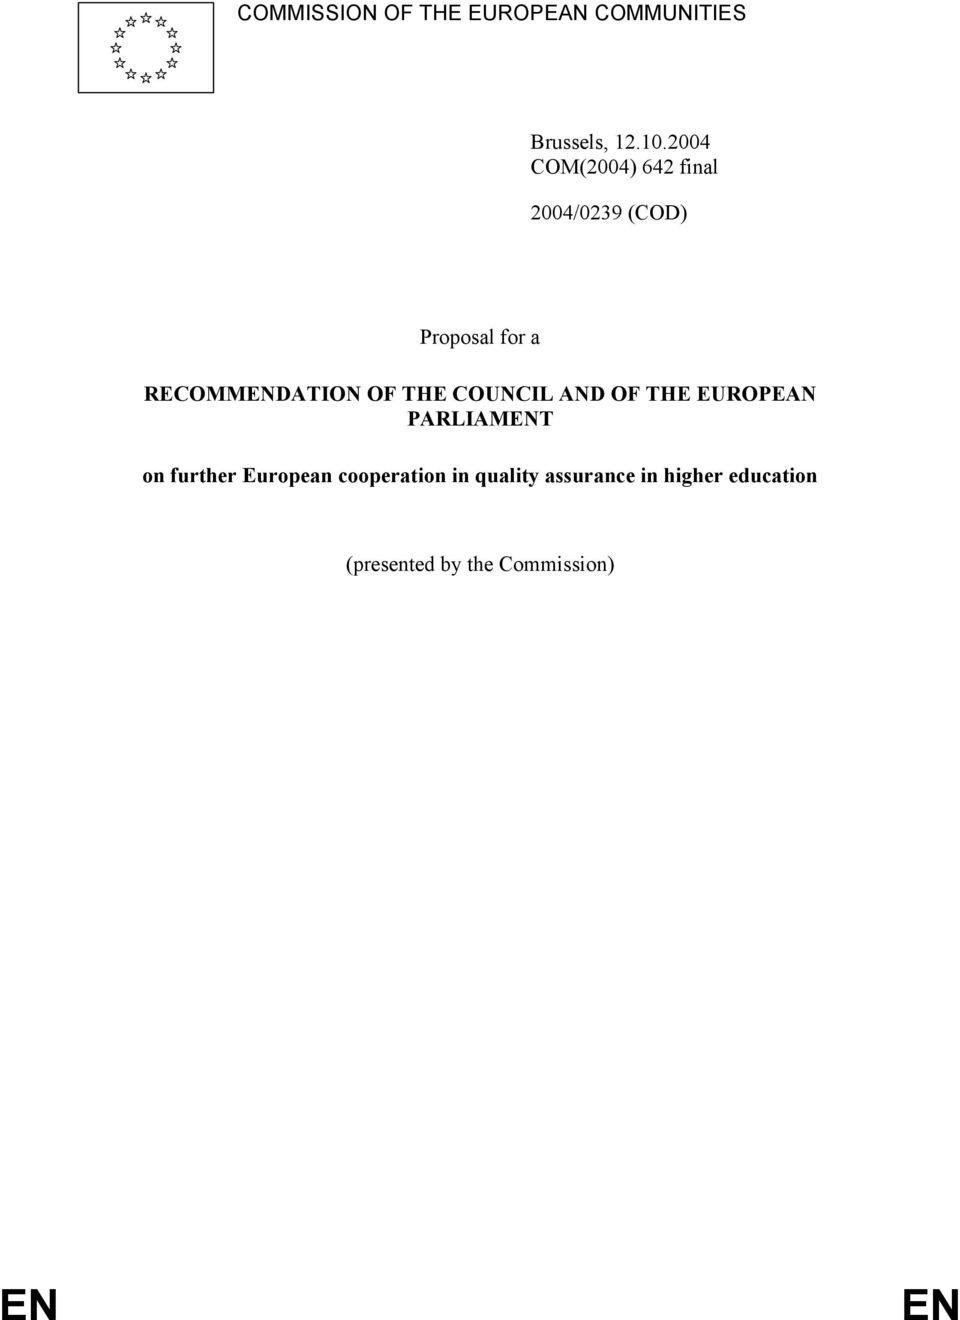 RECOMMENDATION OF THE COUNCIL AND OF THE EUROPEAN PARLIAMENT on